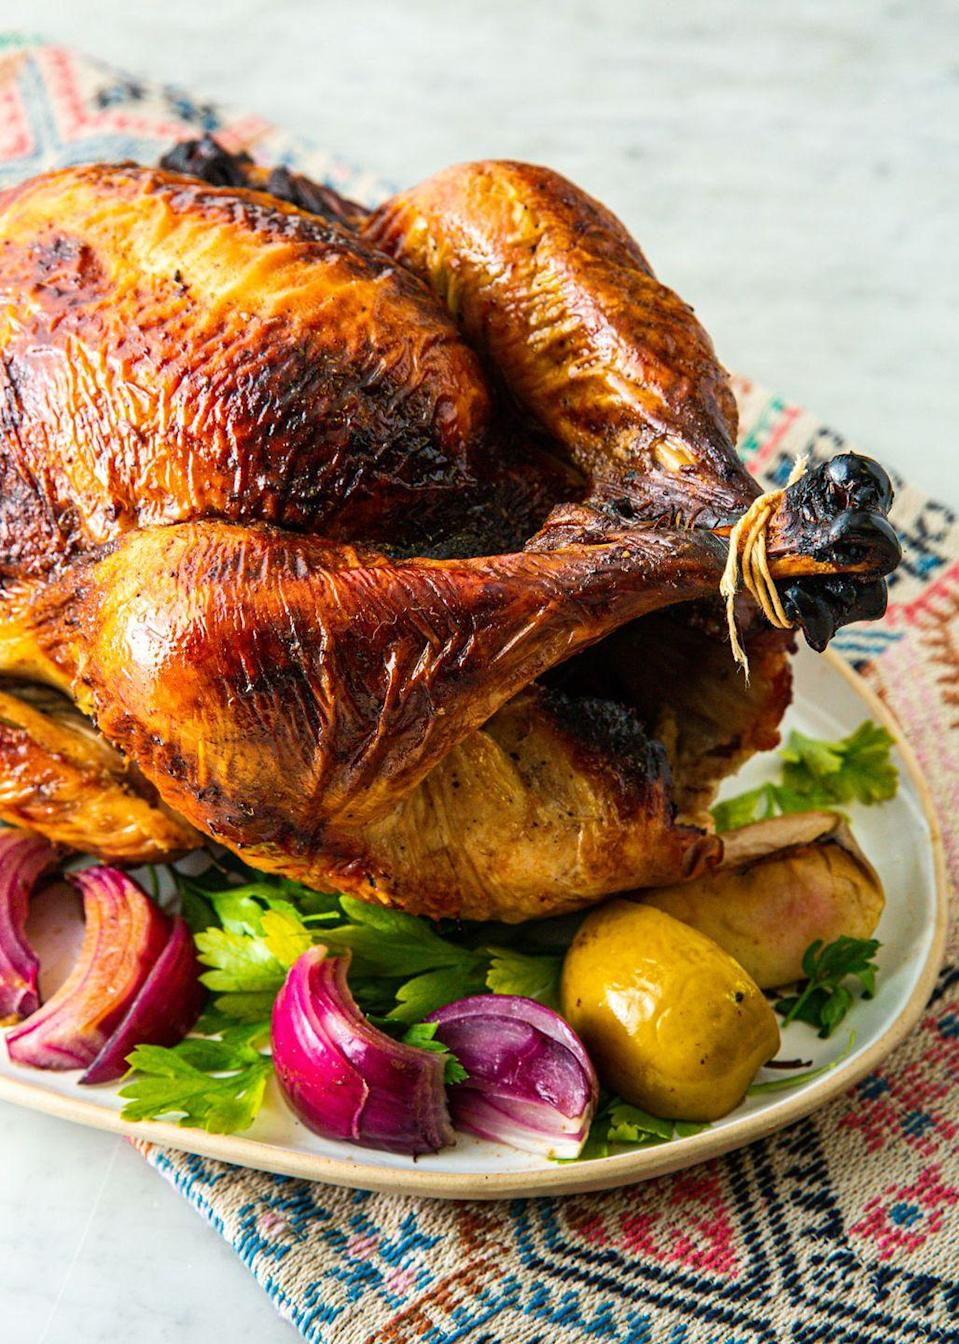 """<p>For the most flavorful turkey turn to apple cider. Your turkey (and guests) will thank you. </p><p>Get the recipe from <a href=""""https://www.delish.com/holiday-recipes/thanksgiving/a29490440/apple-cider-turkey-brine-recipe/"""" rel=""""nofollow noopener"""" target=""""_blank"""" data-ylk=""""slk:Delish"""" class=""""link rapid-noclick-resp"""">Delish</a>.</p>"""